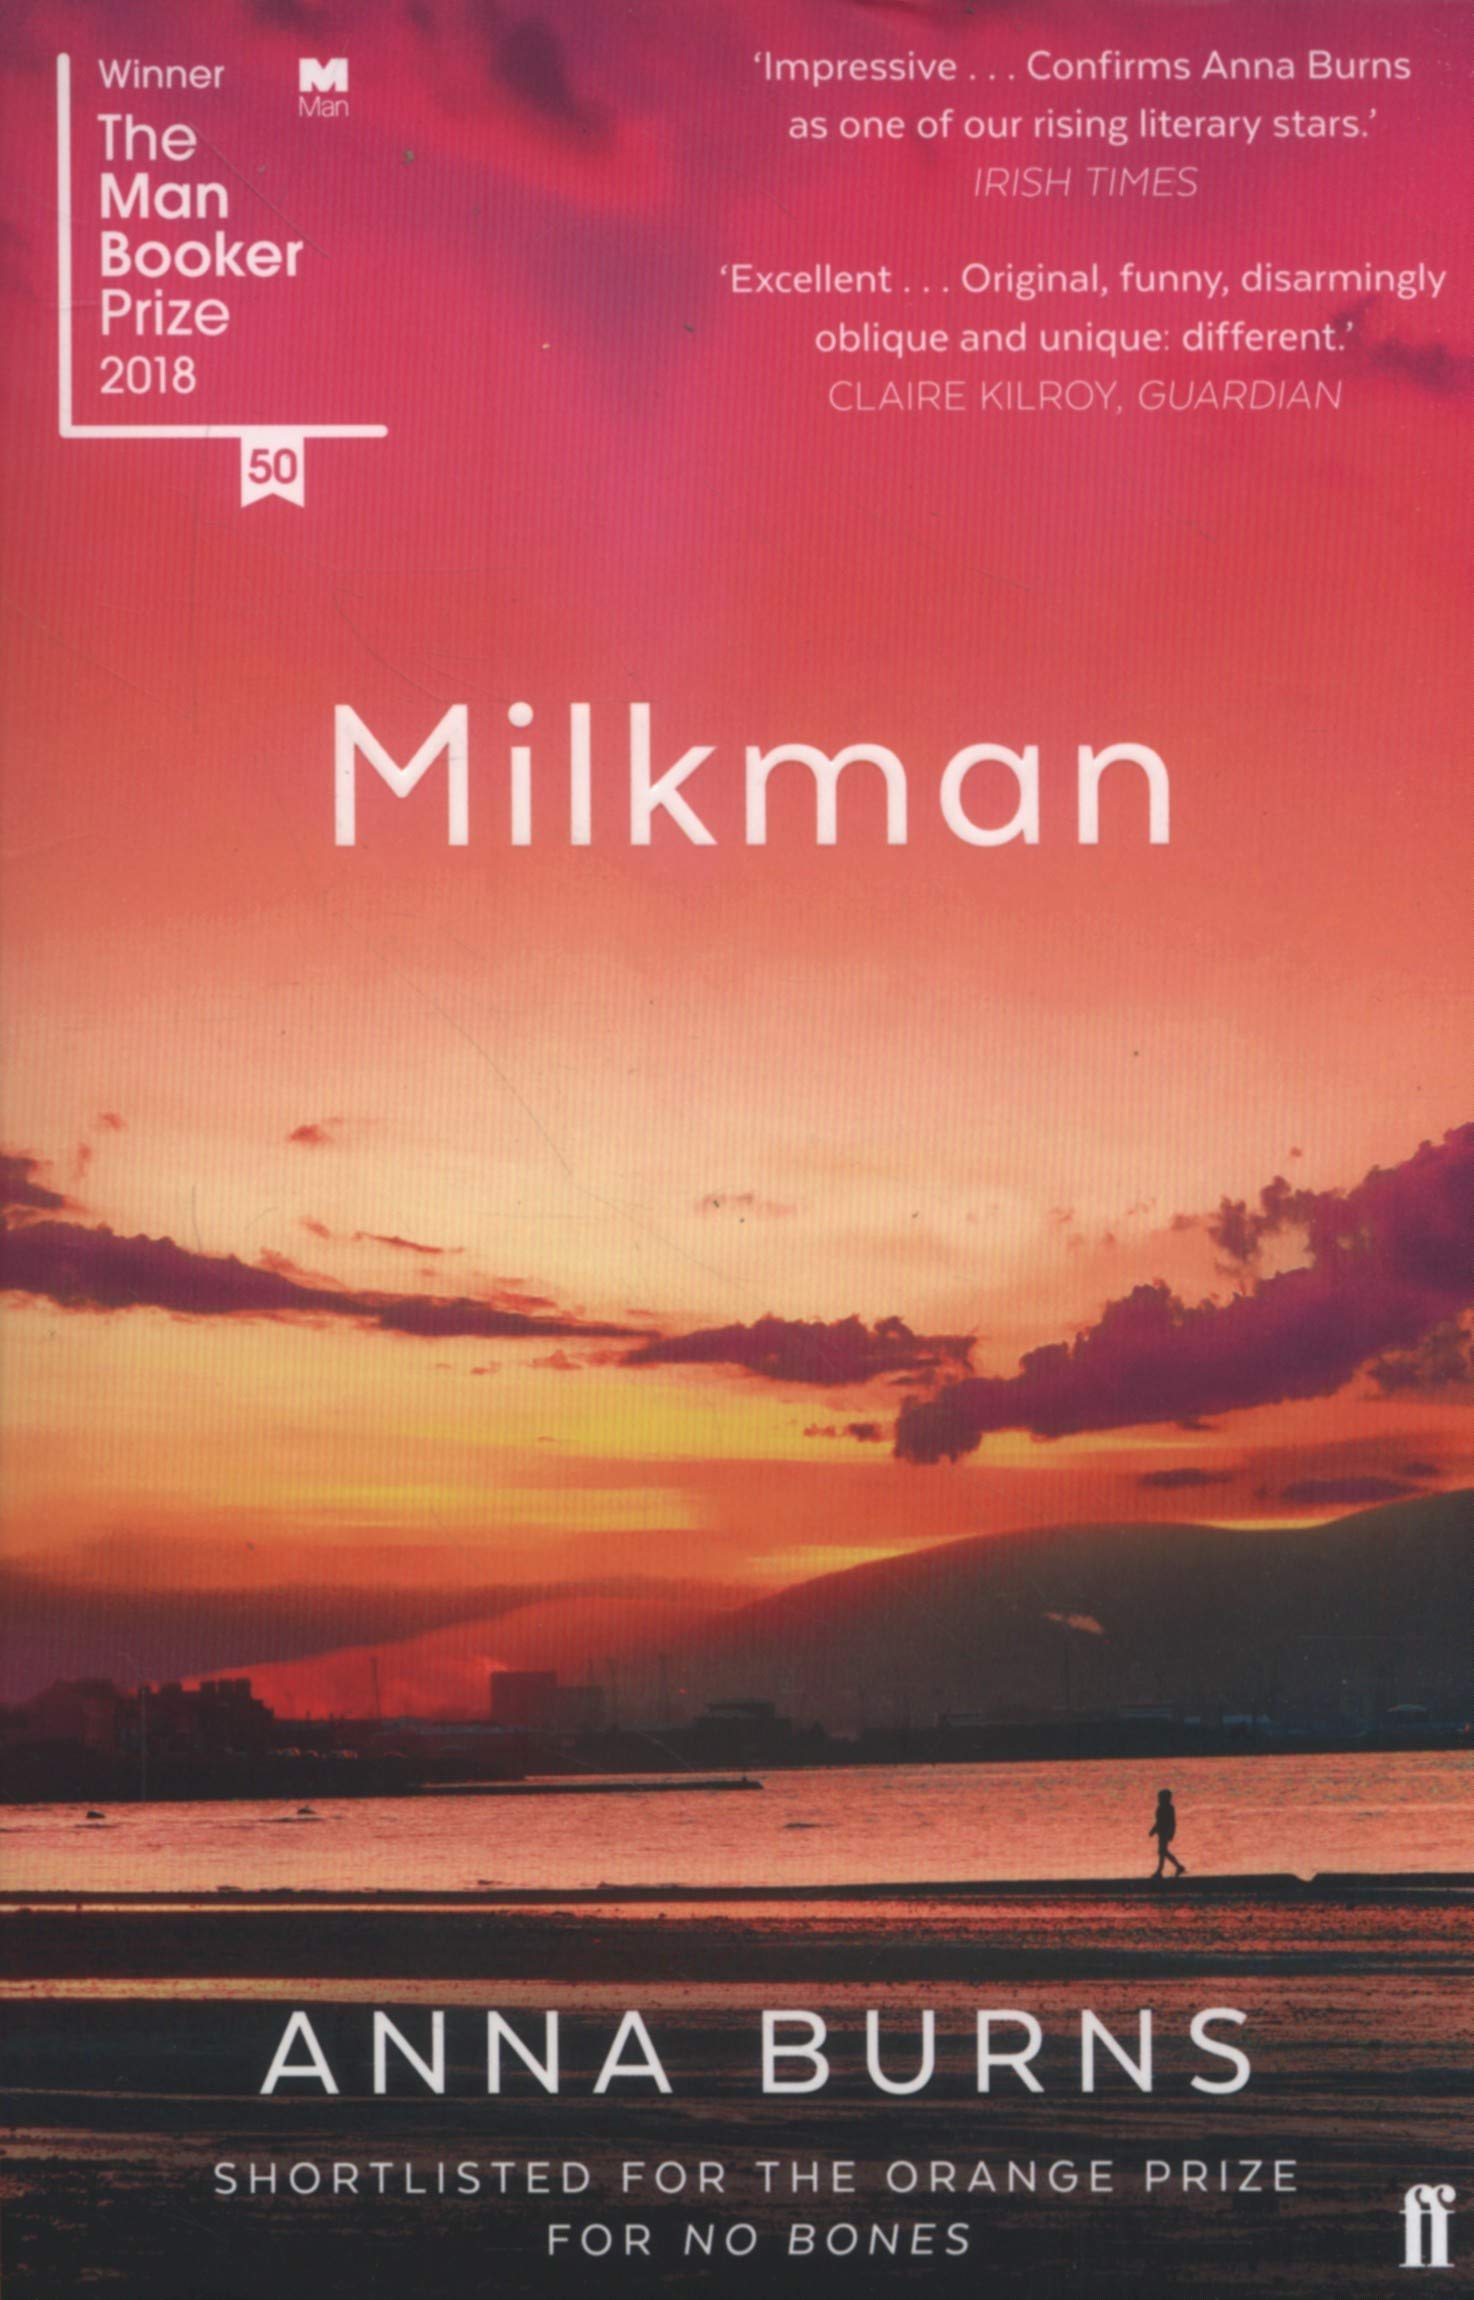 Booker Prize 2019 Milkman by Anna Burns | Easons.com